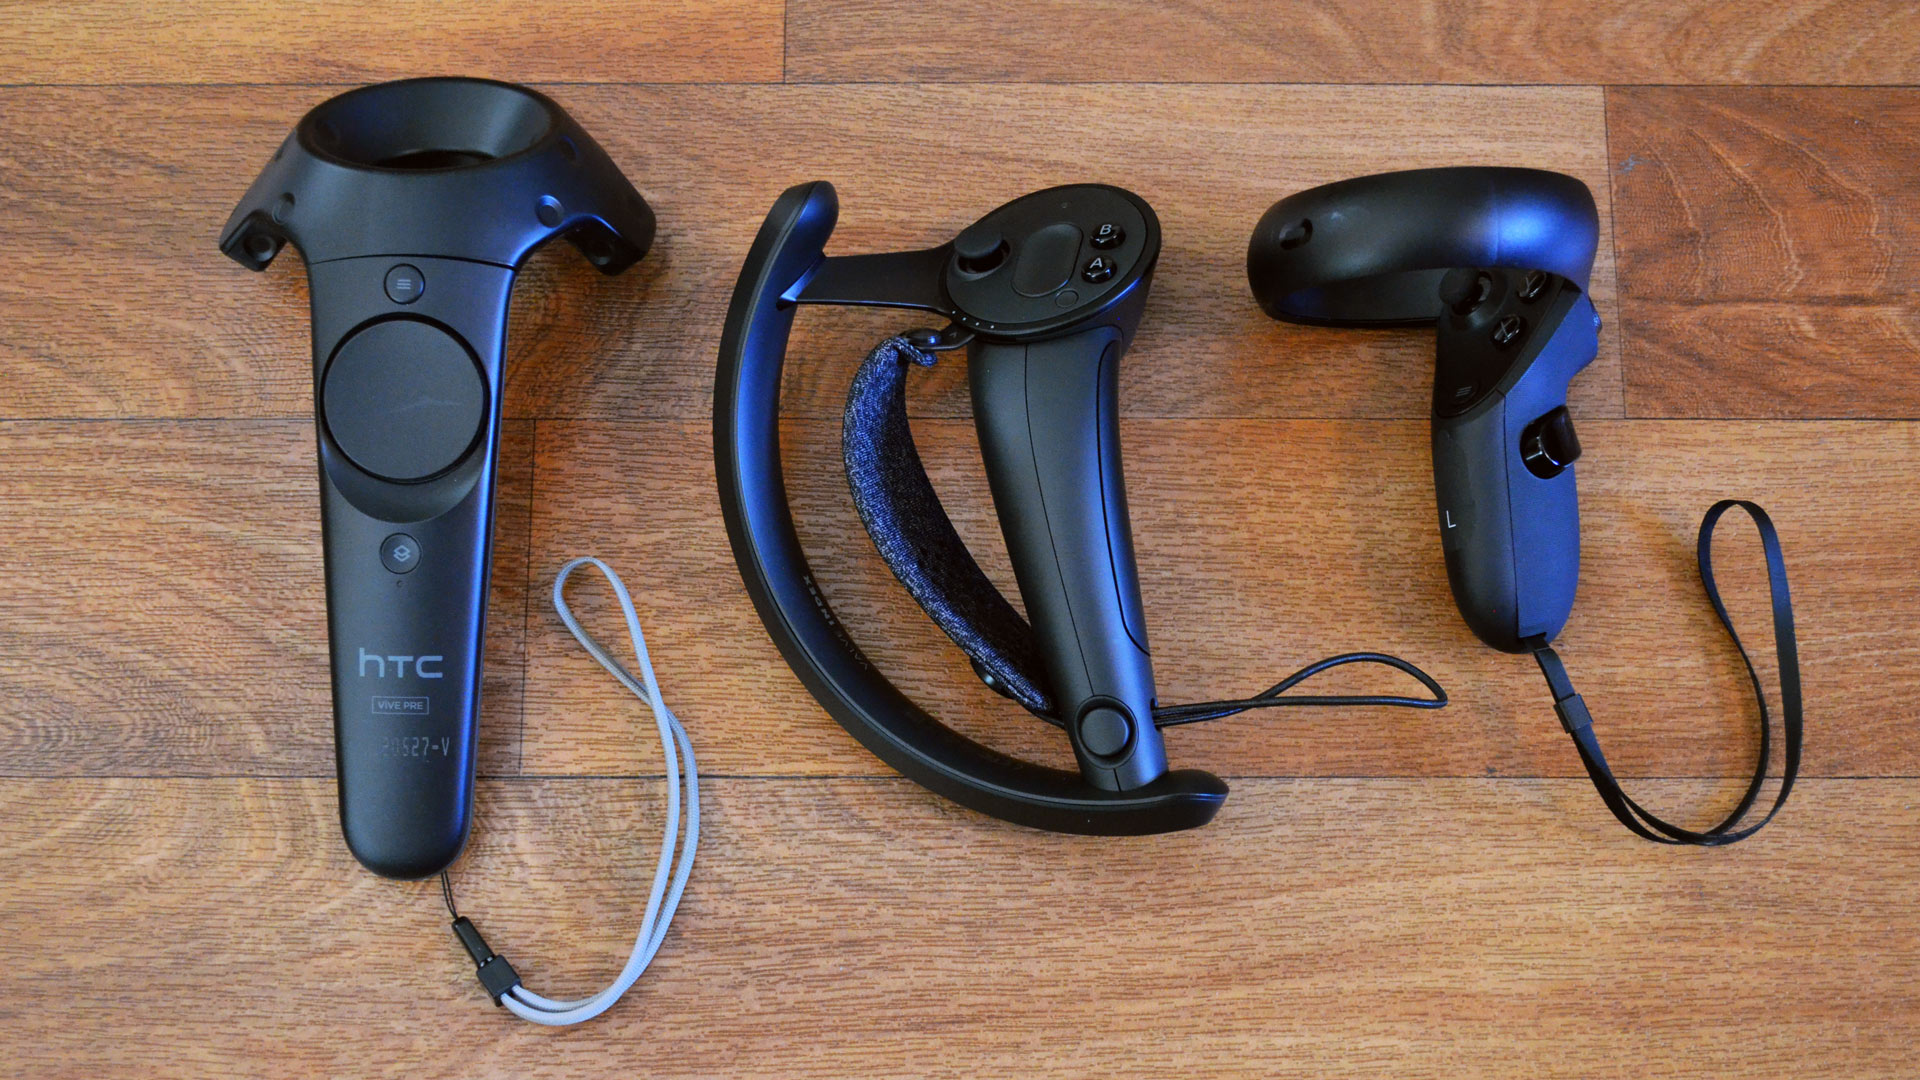 Oculus Exclusive Games Works Great with Index Controllers